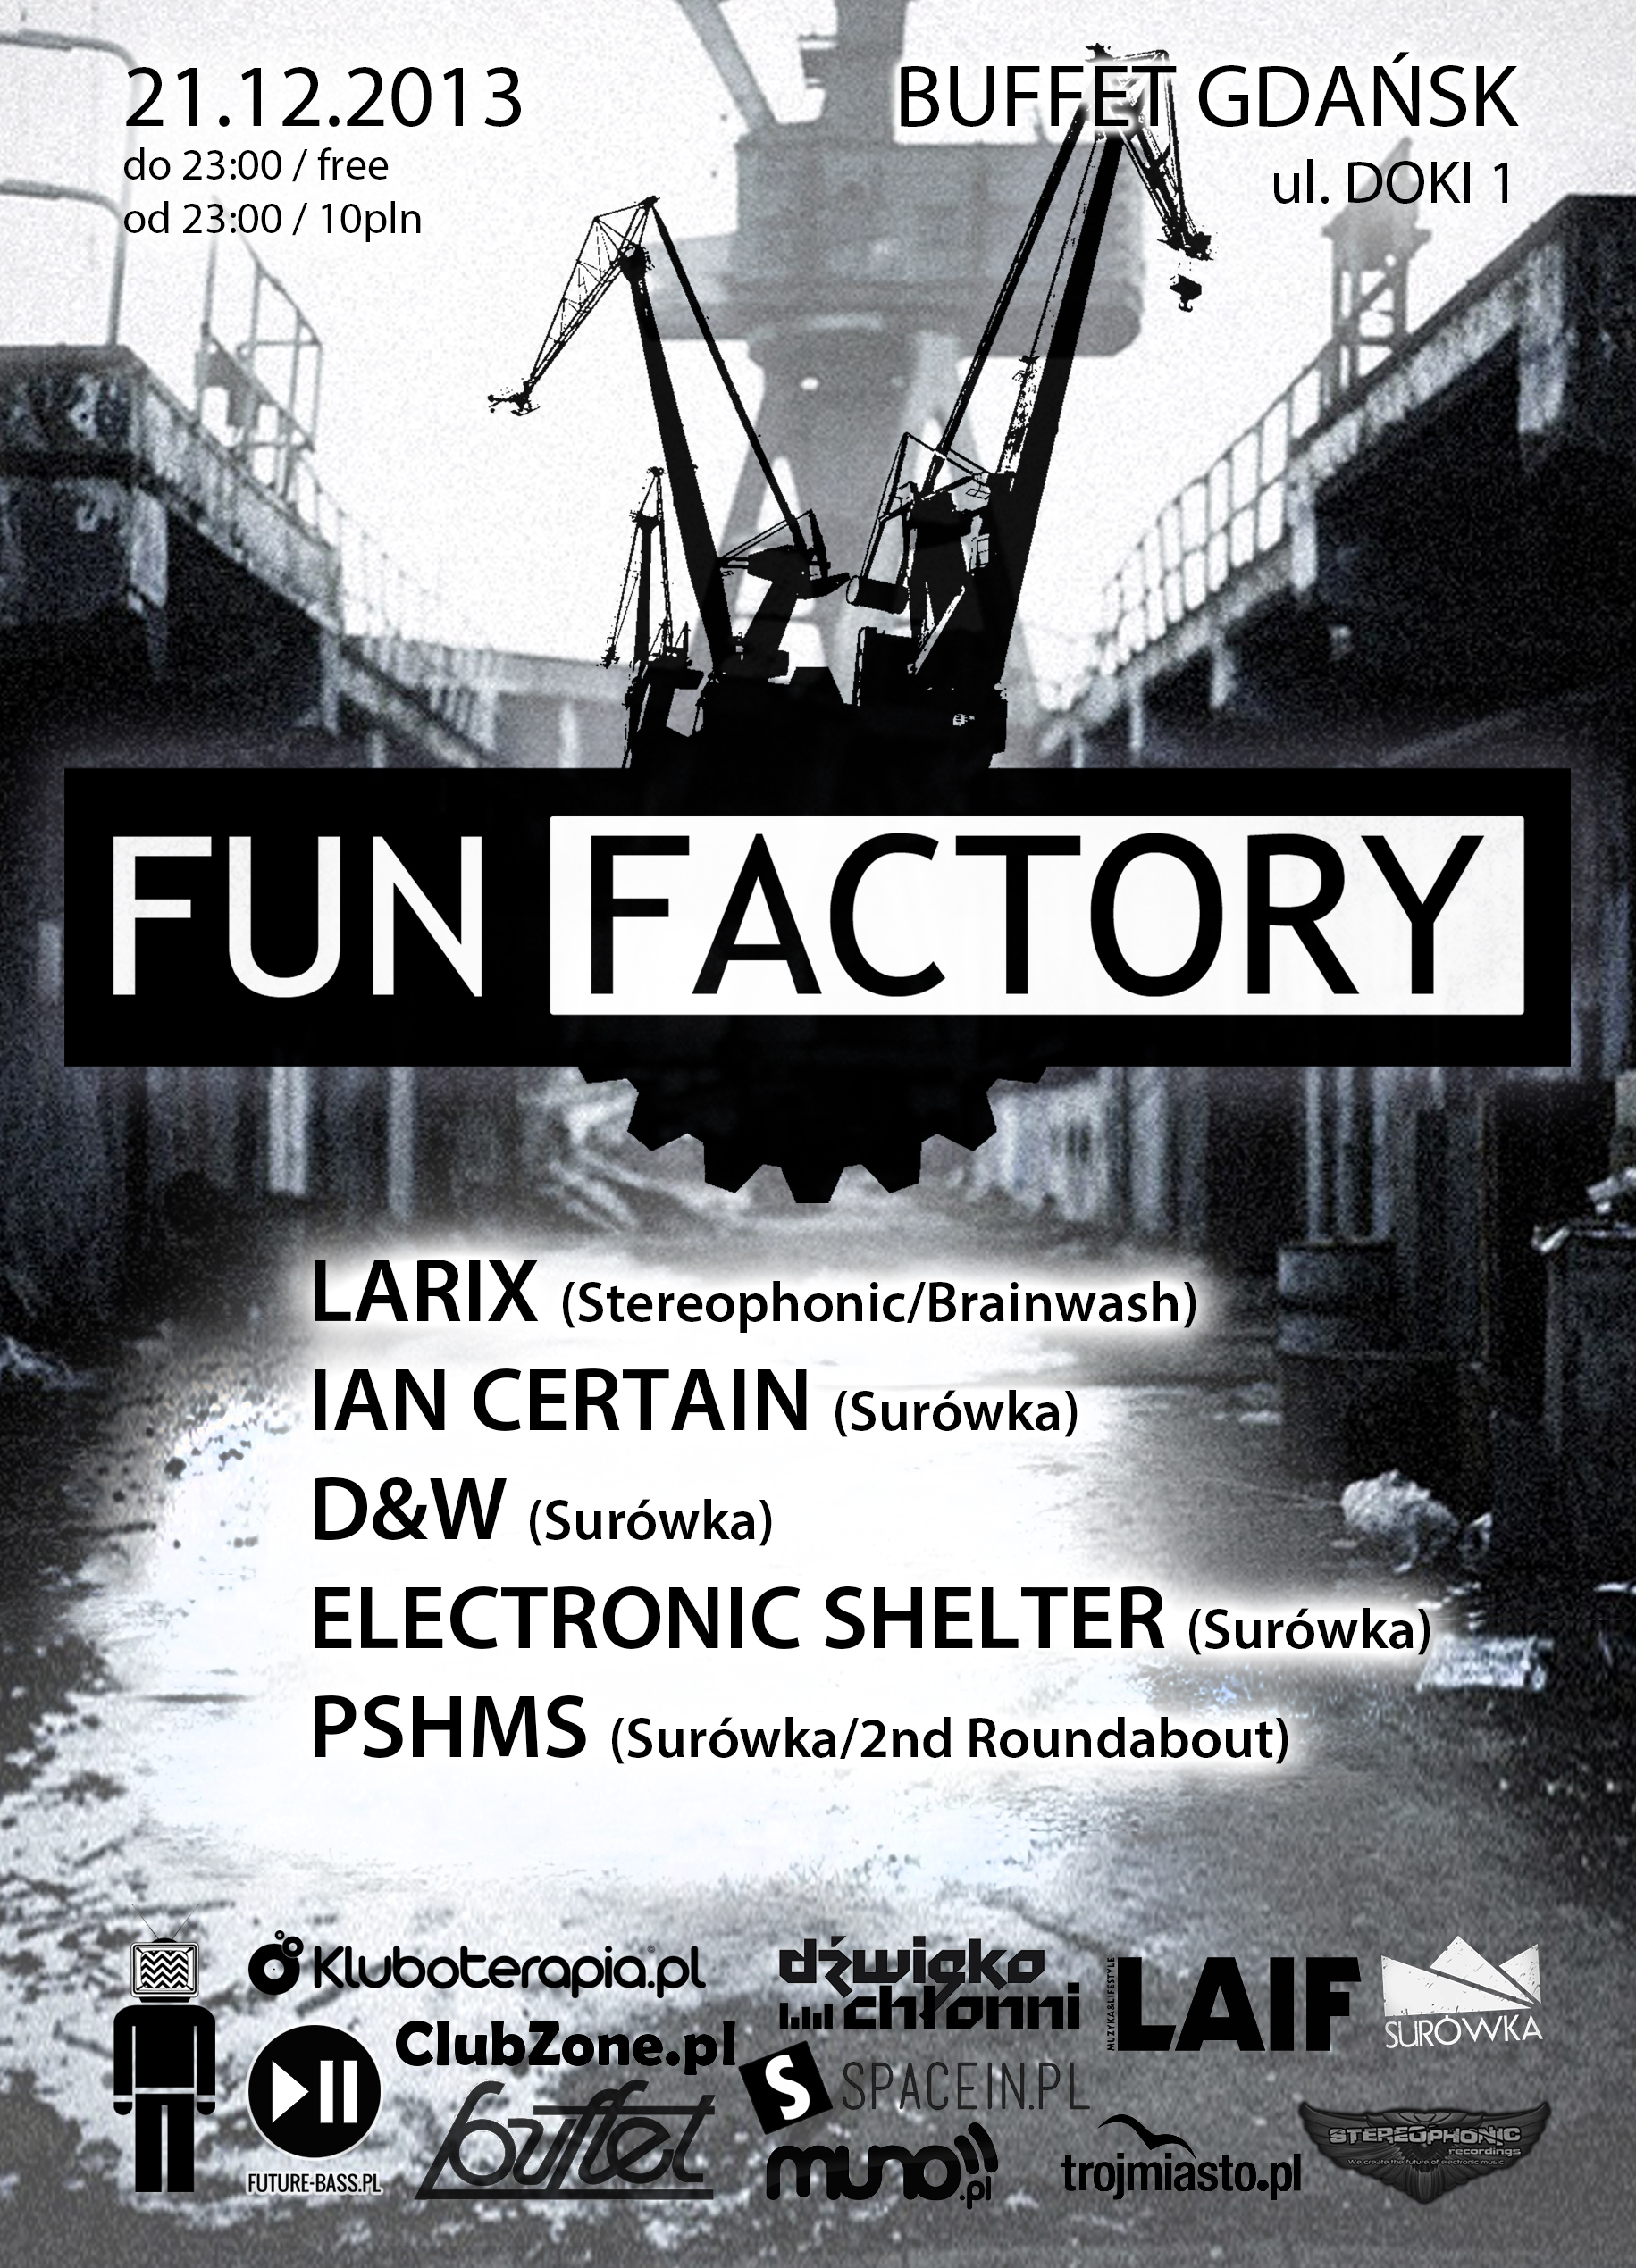 Fun Factory presents Larix 21.12.2013 - plakat